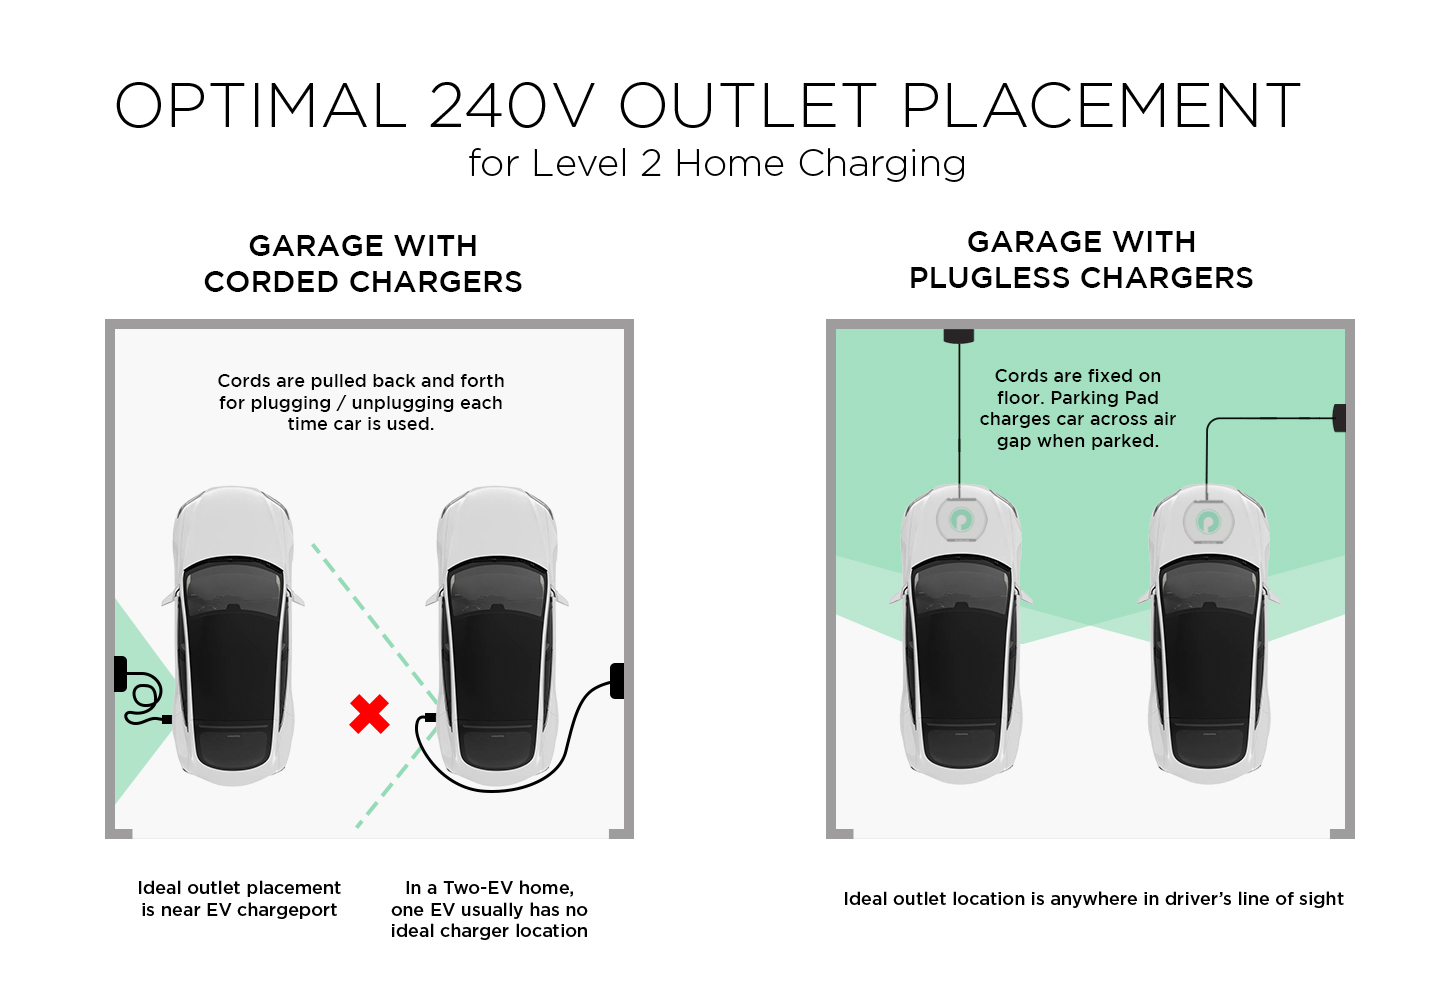 How To Avoid Common Pitfalls With Level 2 Ev Charger Installation Single Phase Wiring Diagram On 220 3 Outlet Chargerplacementgraphic More Explanation Shaded Garage Area